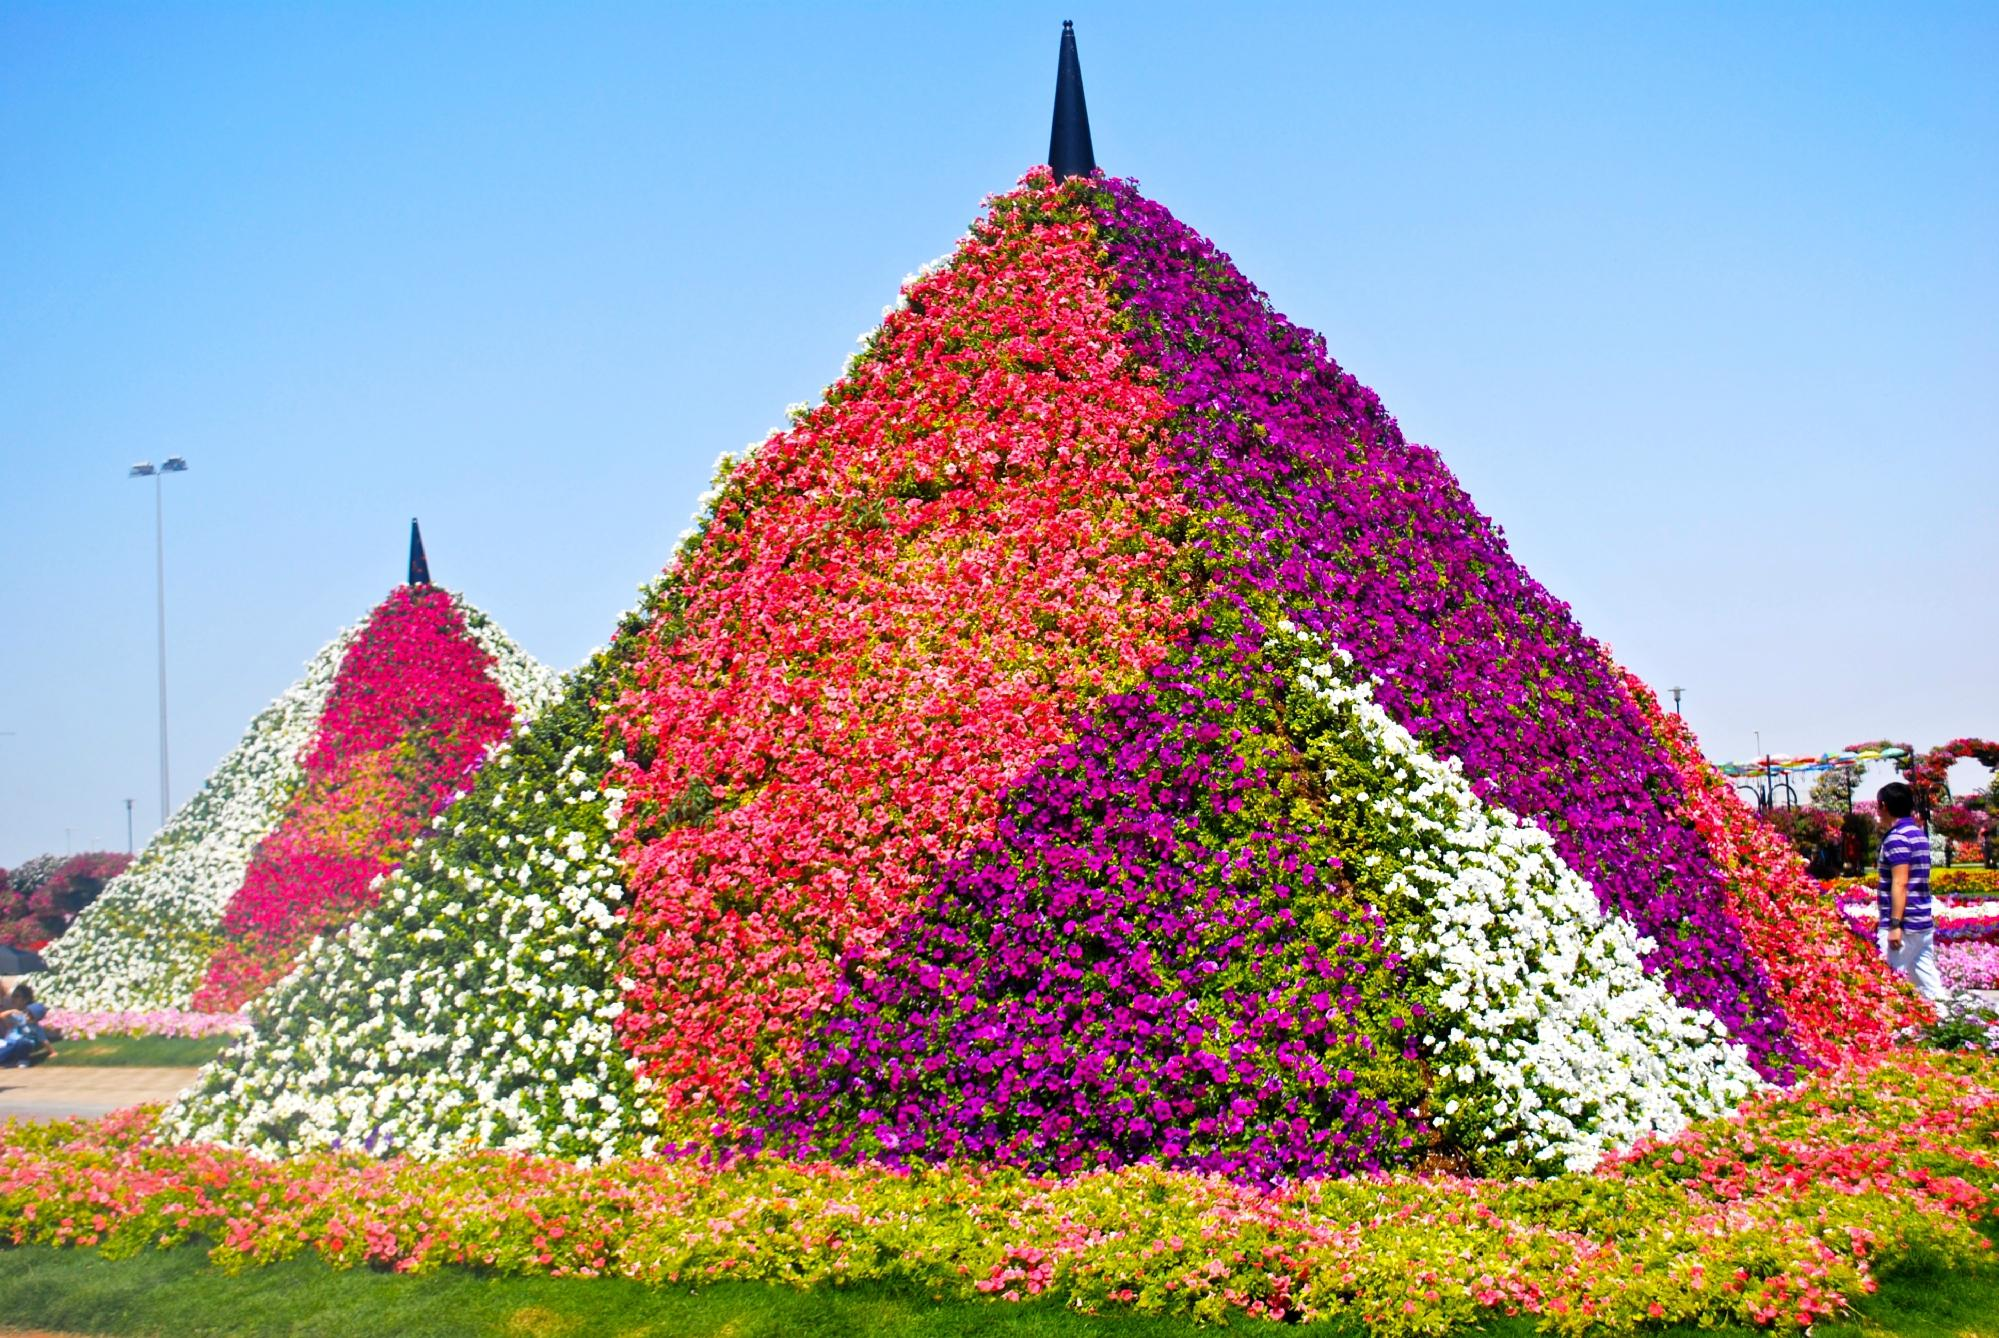 Dubai miracle garden 2018 all you need to know before you go with all photos 8045 izmirmasajfo